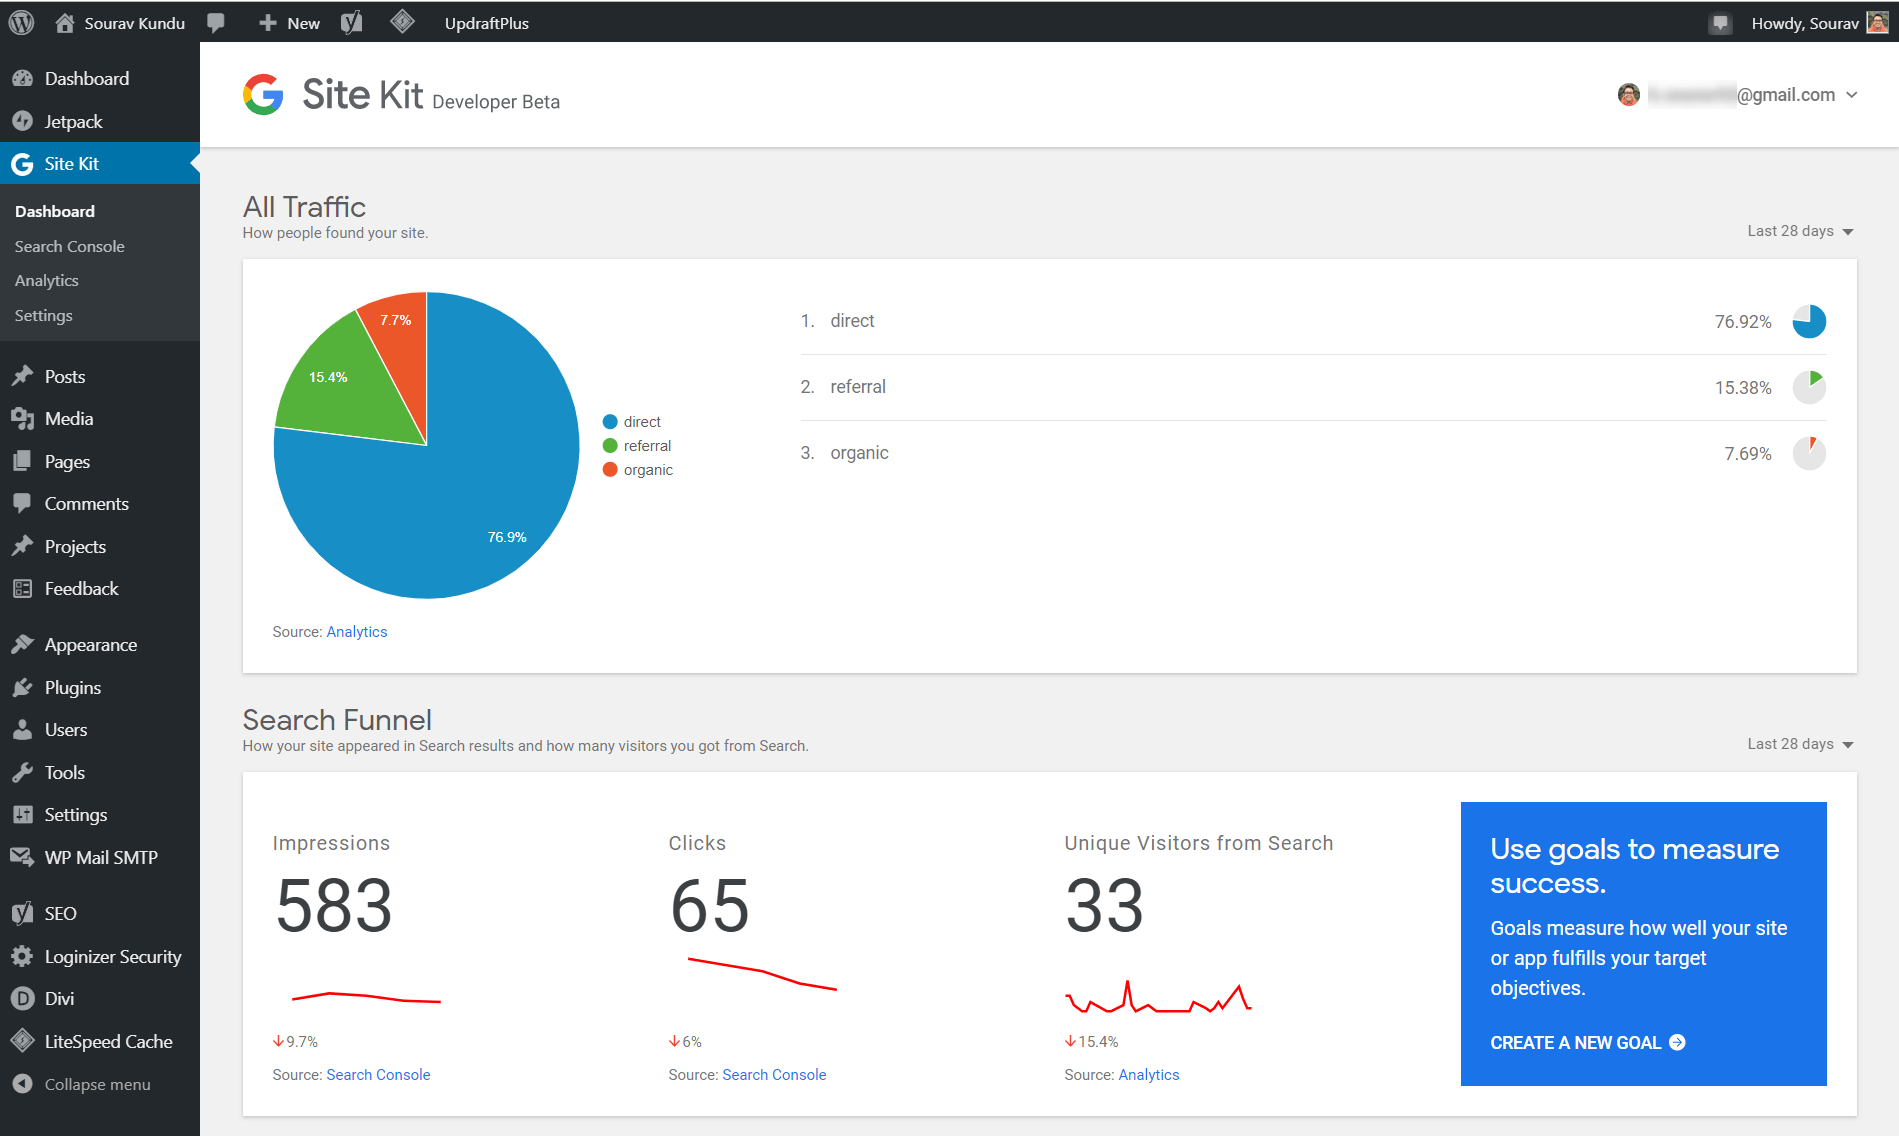 Configuring Google Analytics with Site Kit dashboard